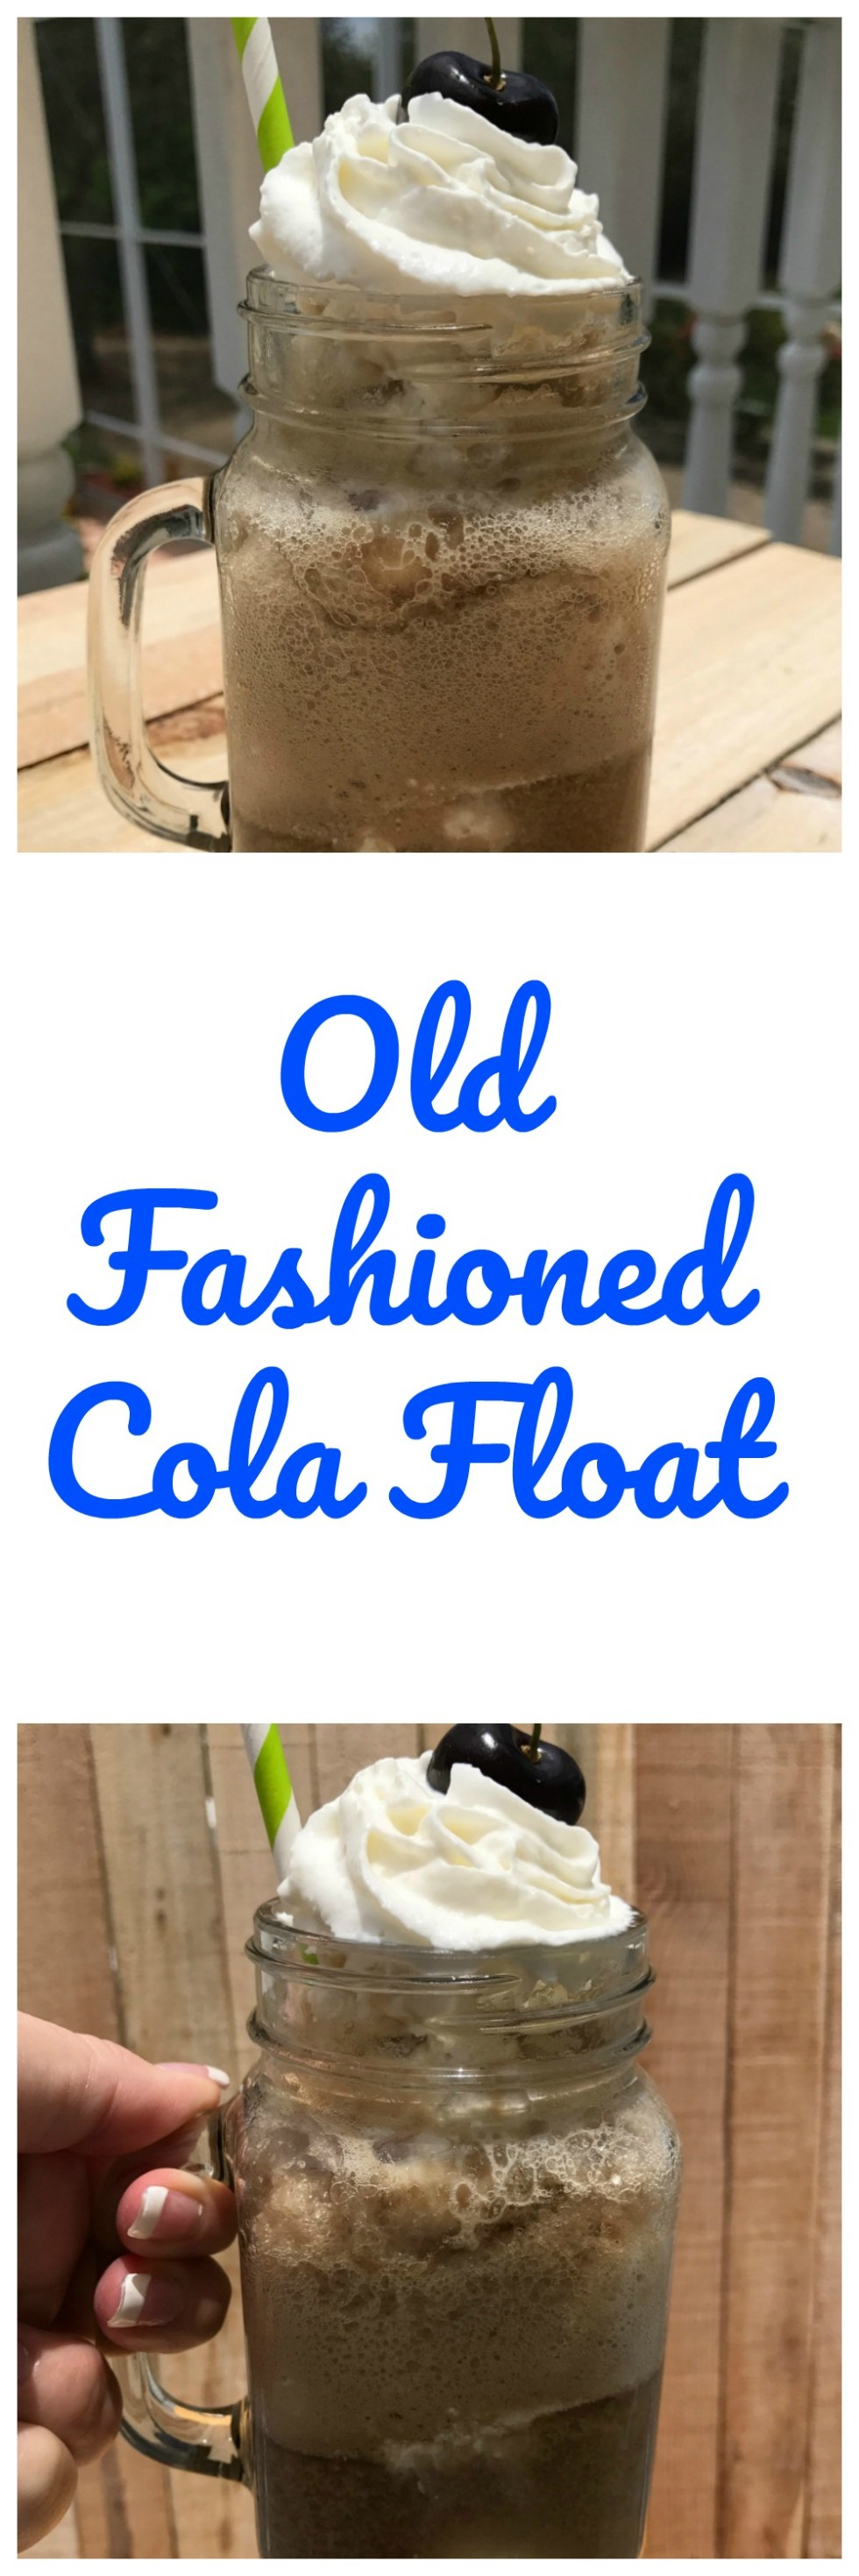 Make old fashioned cola floats on a hot summer day to cool off.